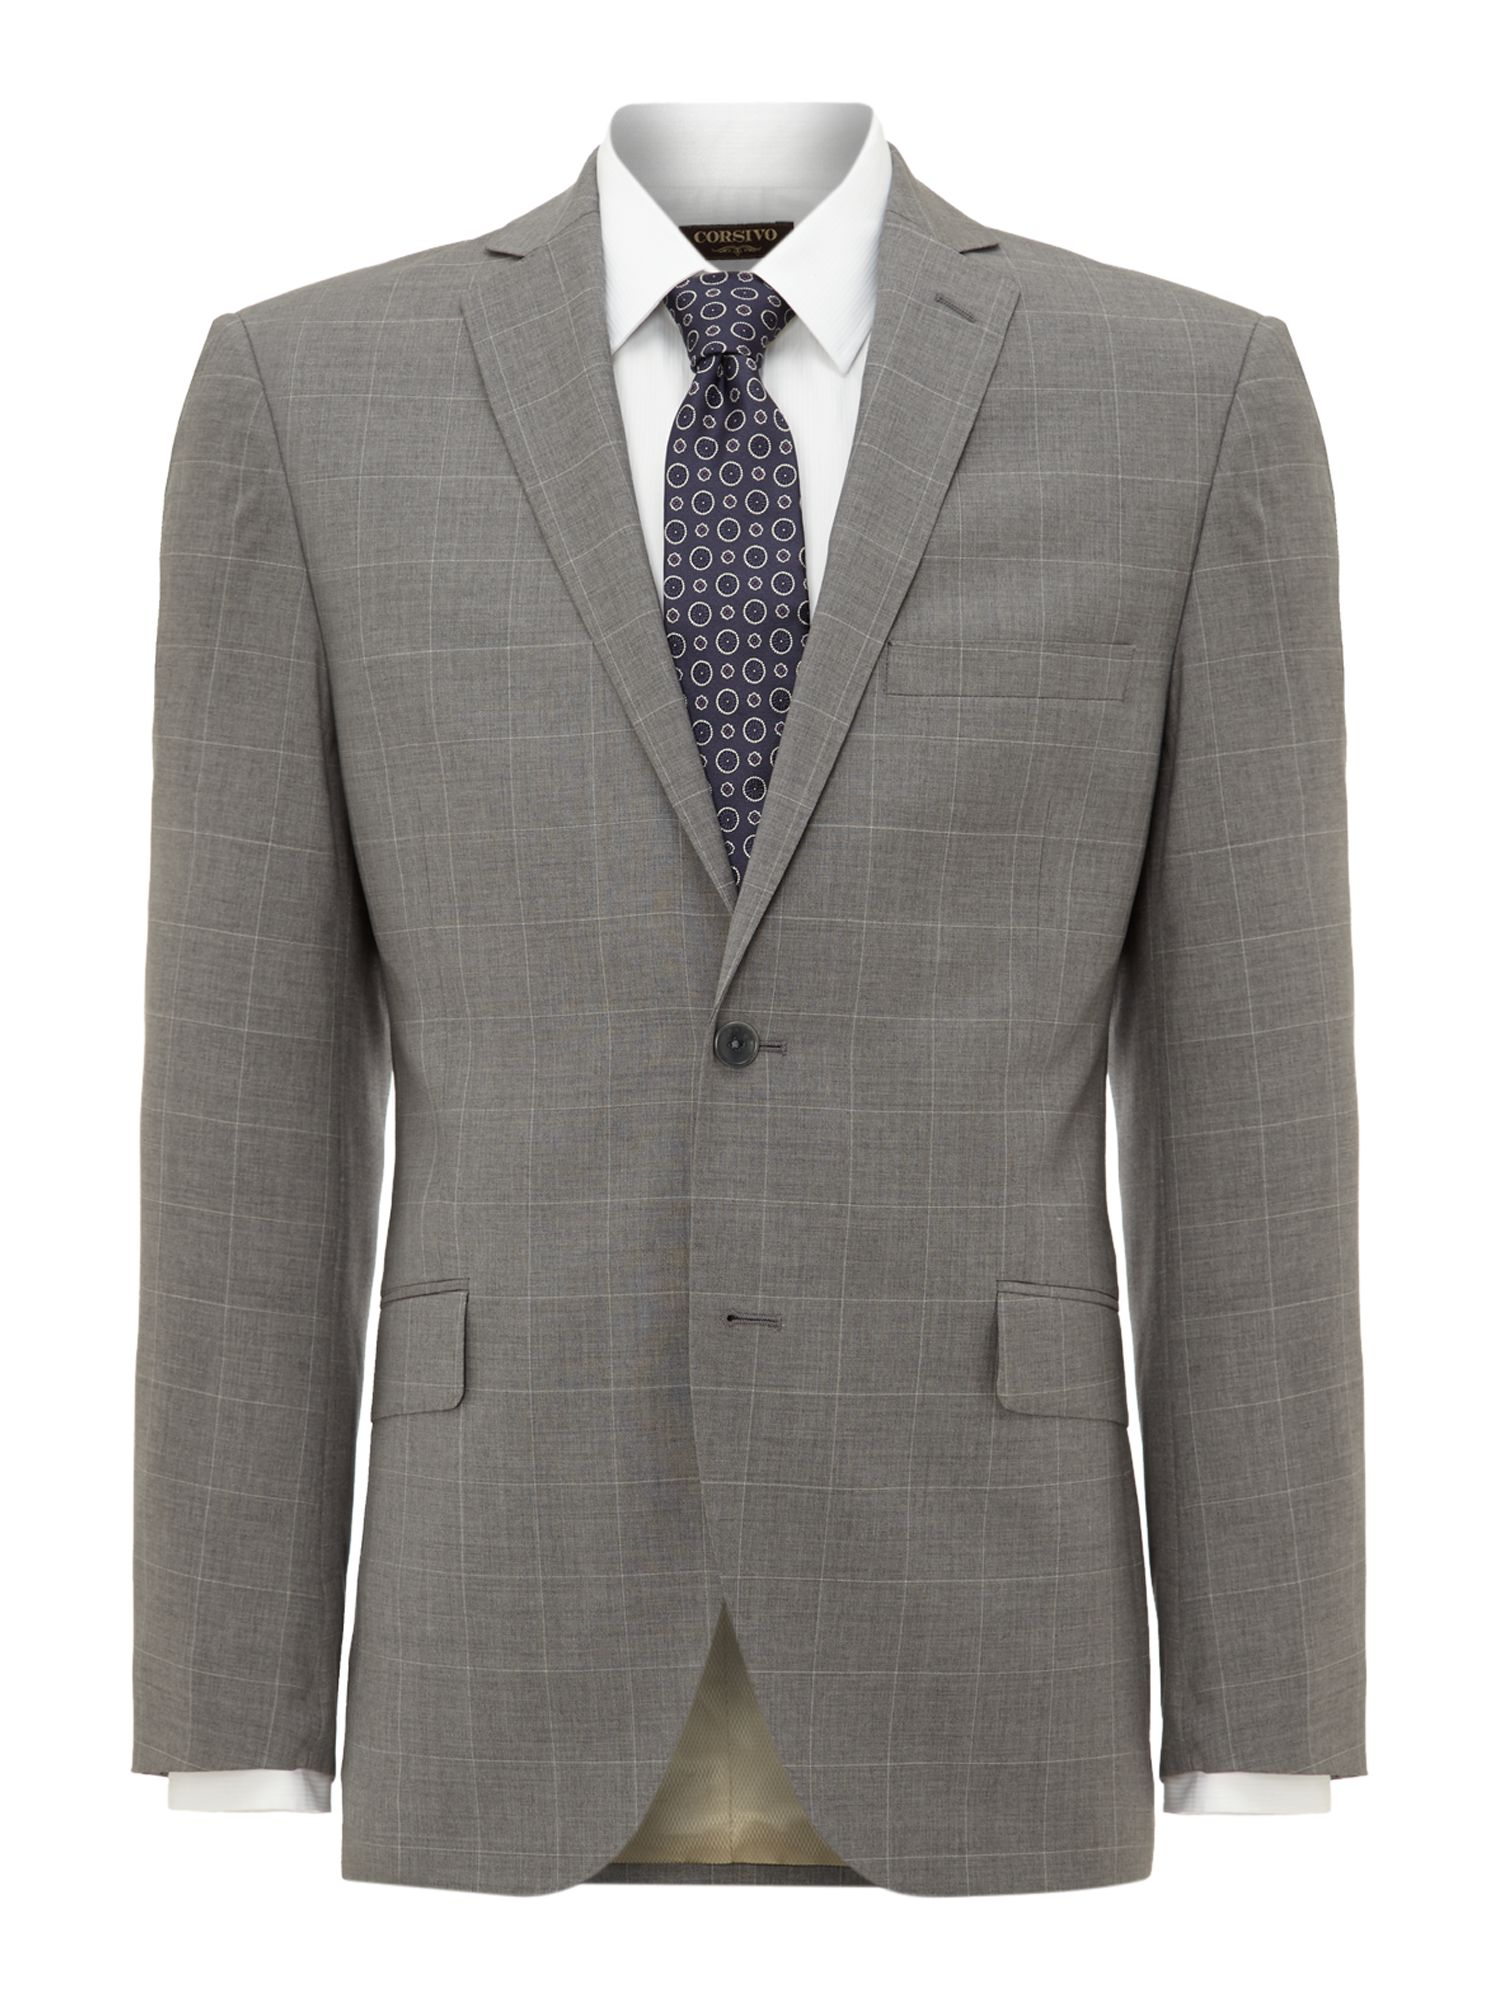 Mens Corsivo Lambo windowpane check suit jacket $69.00 AT vintagedancer.com